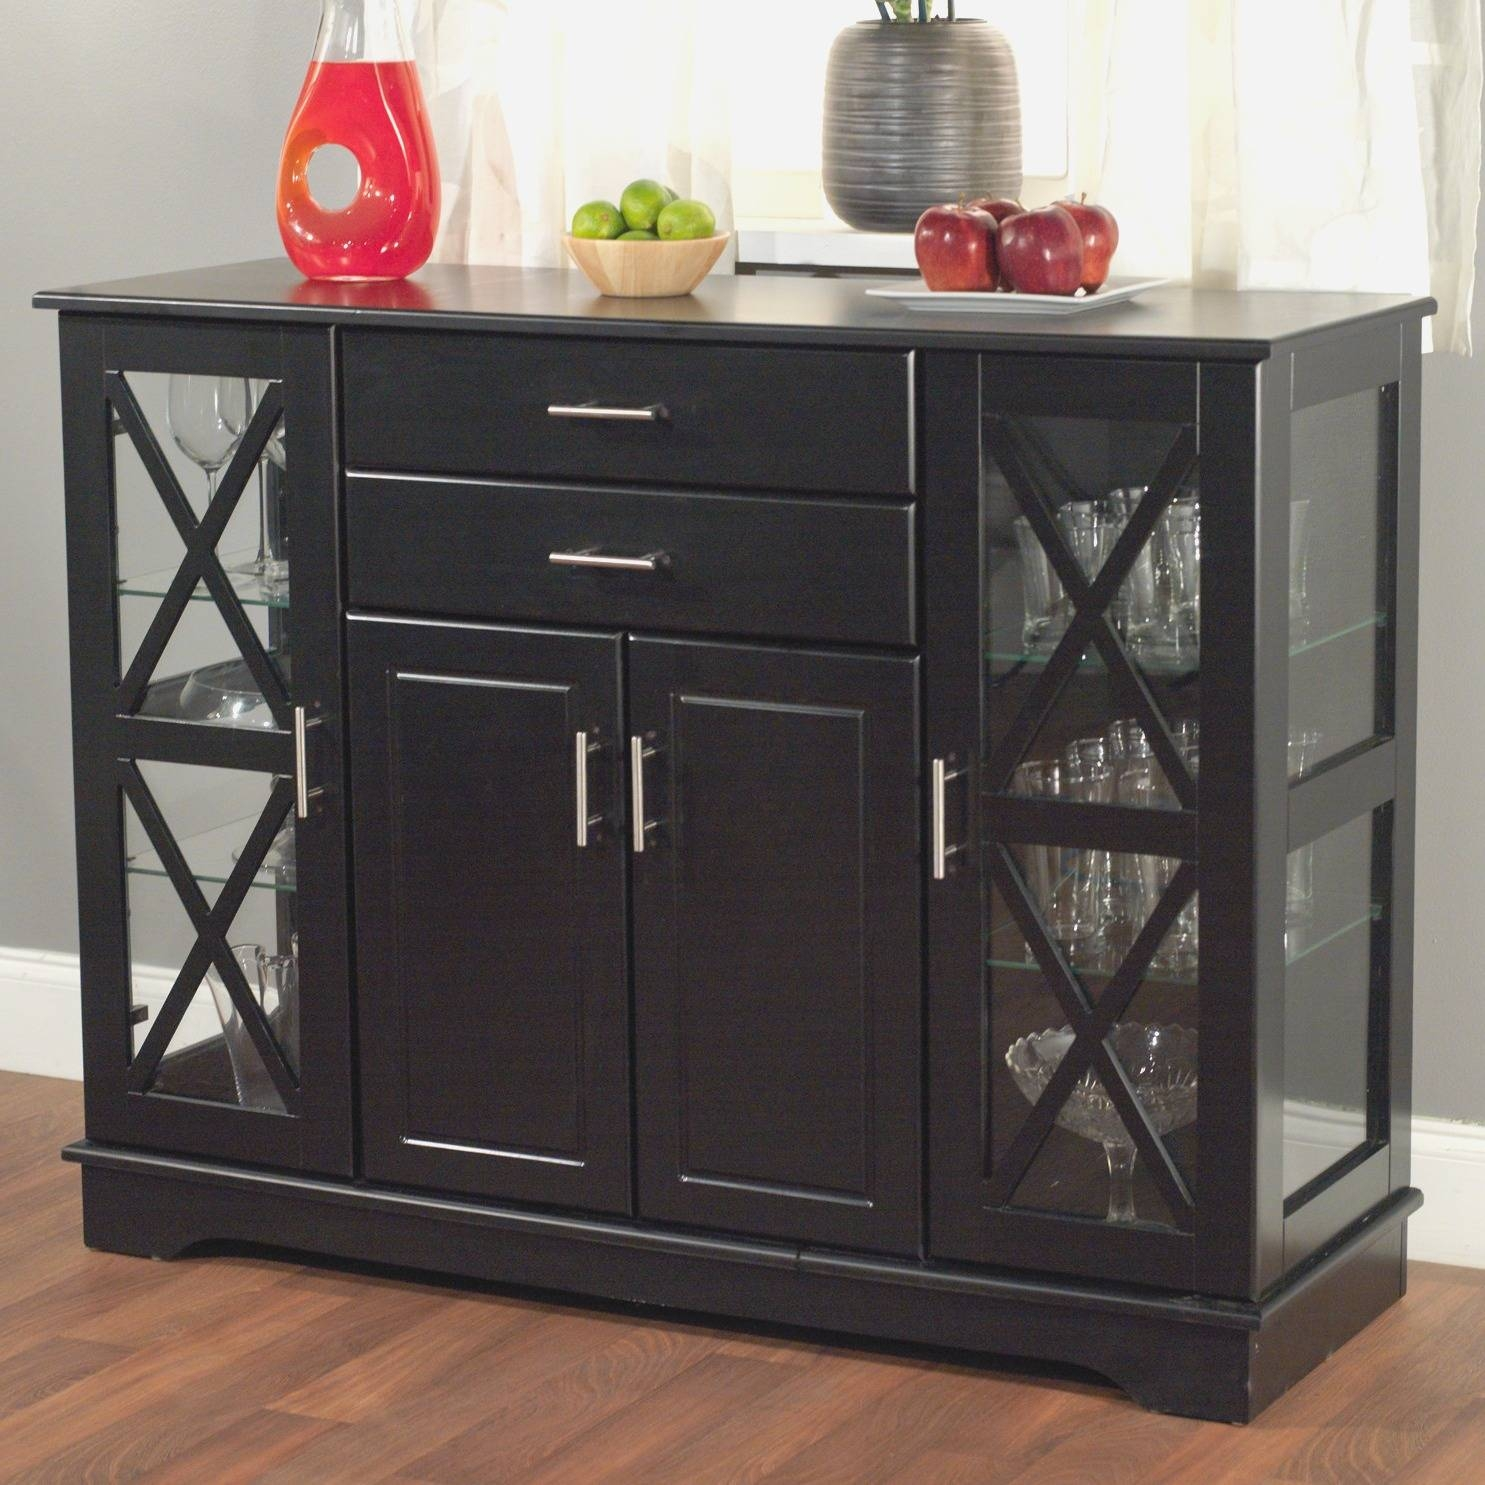 Large Sideboards And Buffets: Large Sideboards And Buffets Throughout Tall Sideboards (#6 of 15)